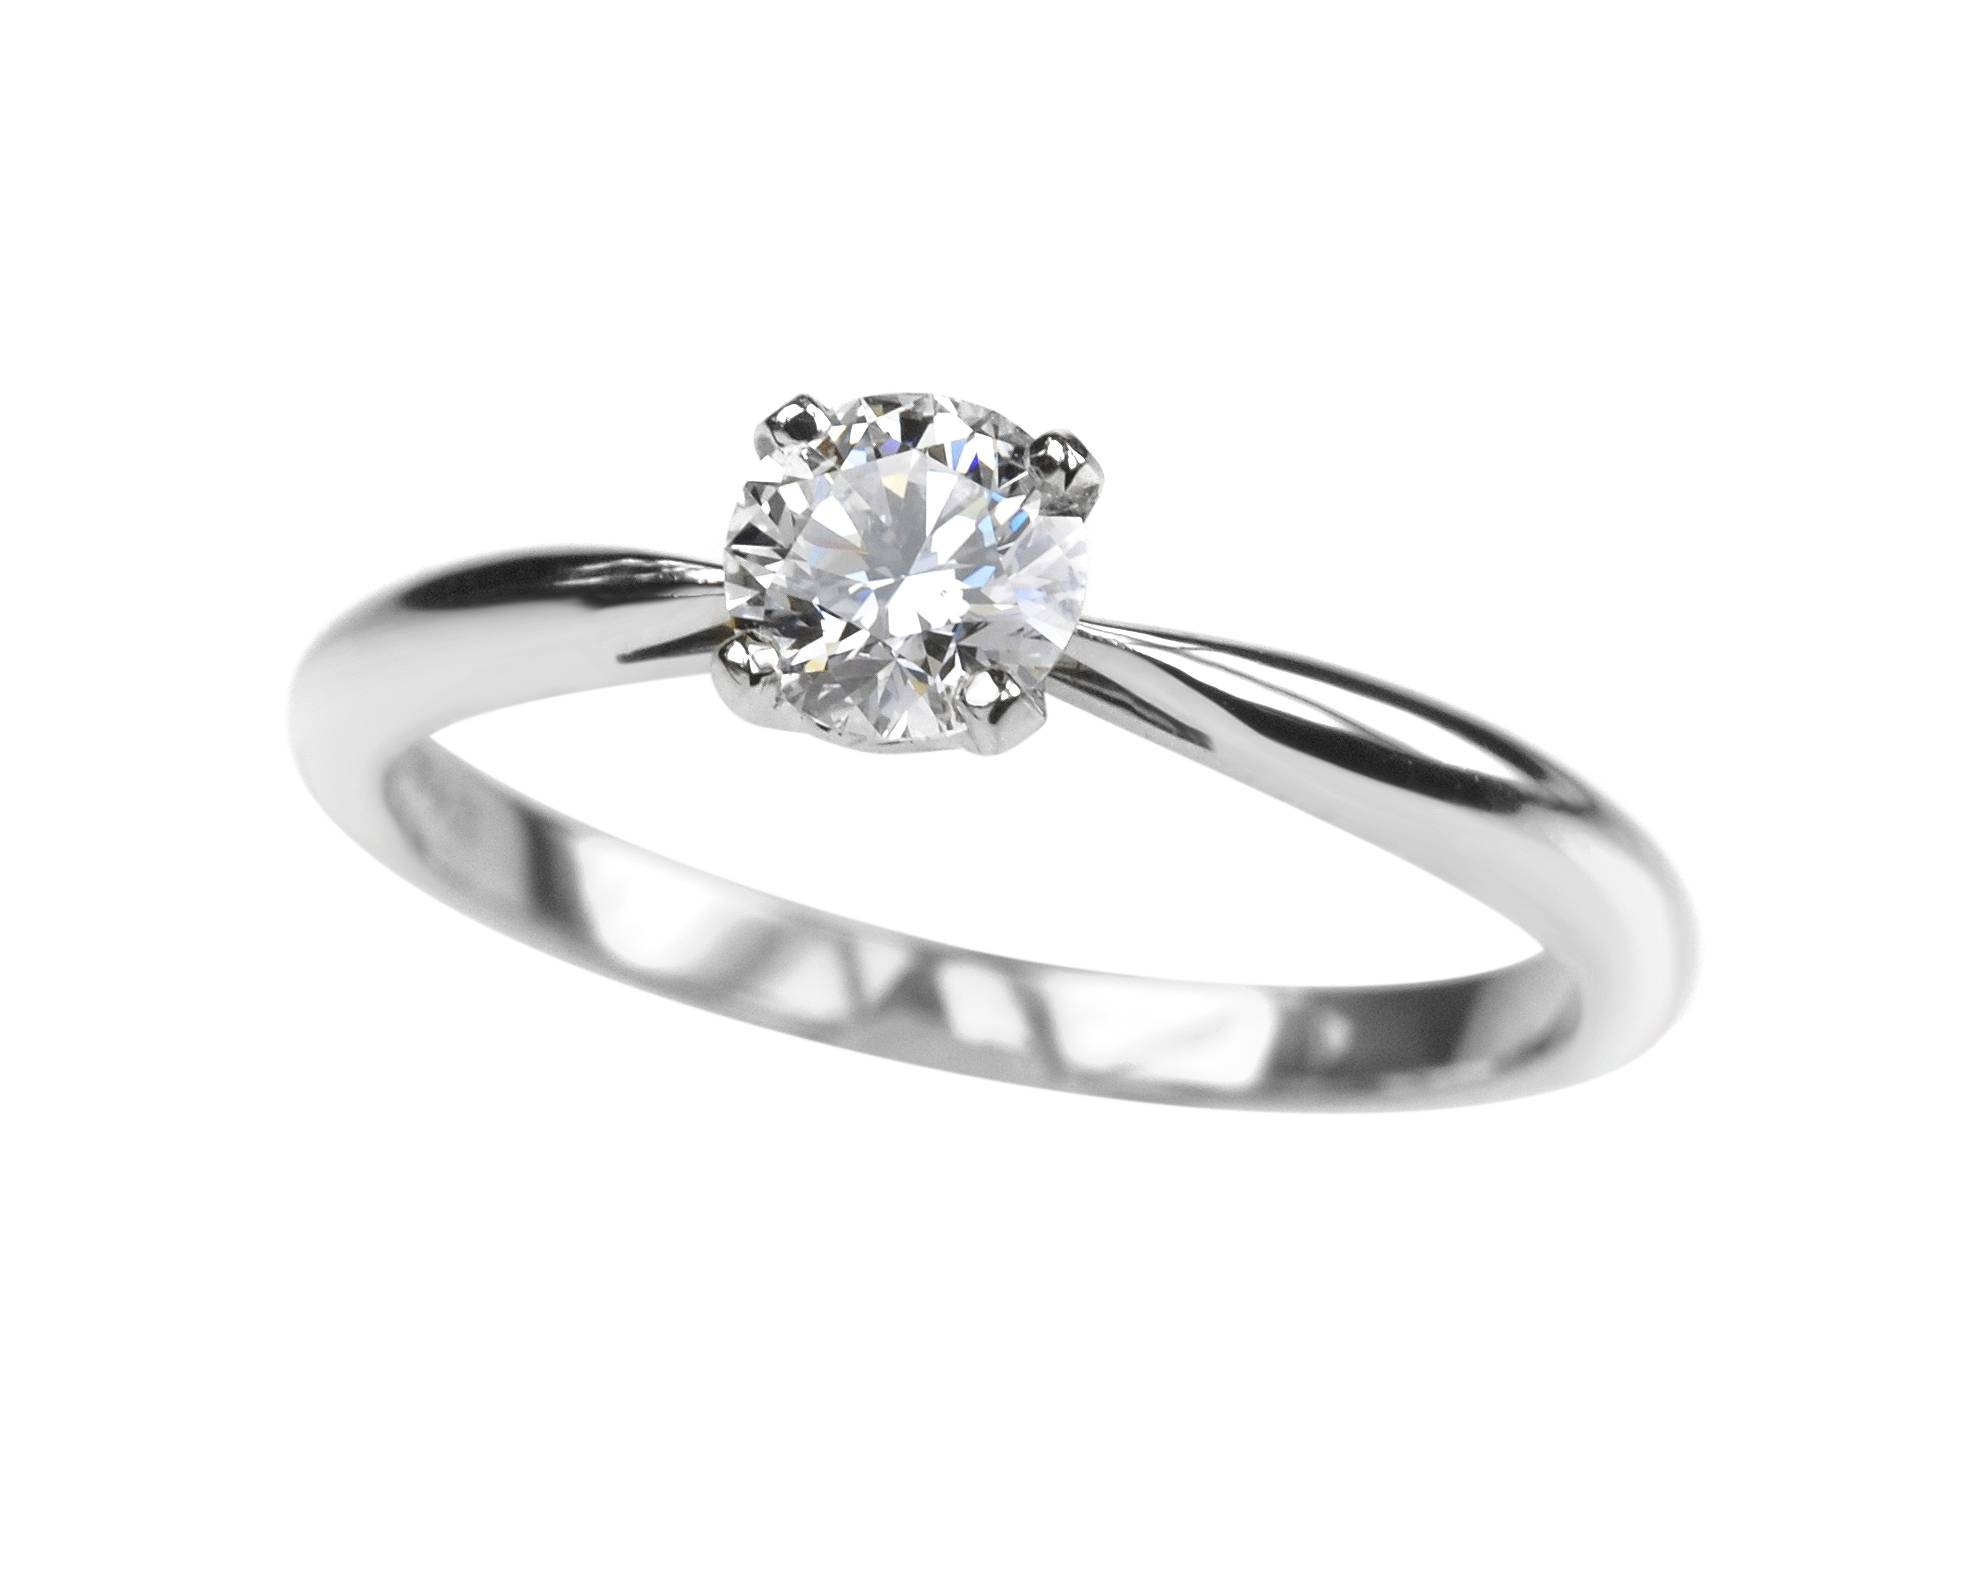 Diamond Engagement Rings London, Platinum Engagement Rings Throughout Diamond Wedding Rings (View 7 of 15)